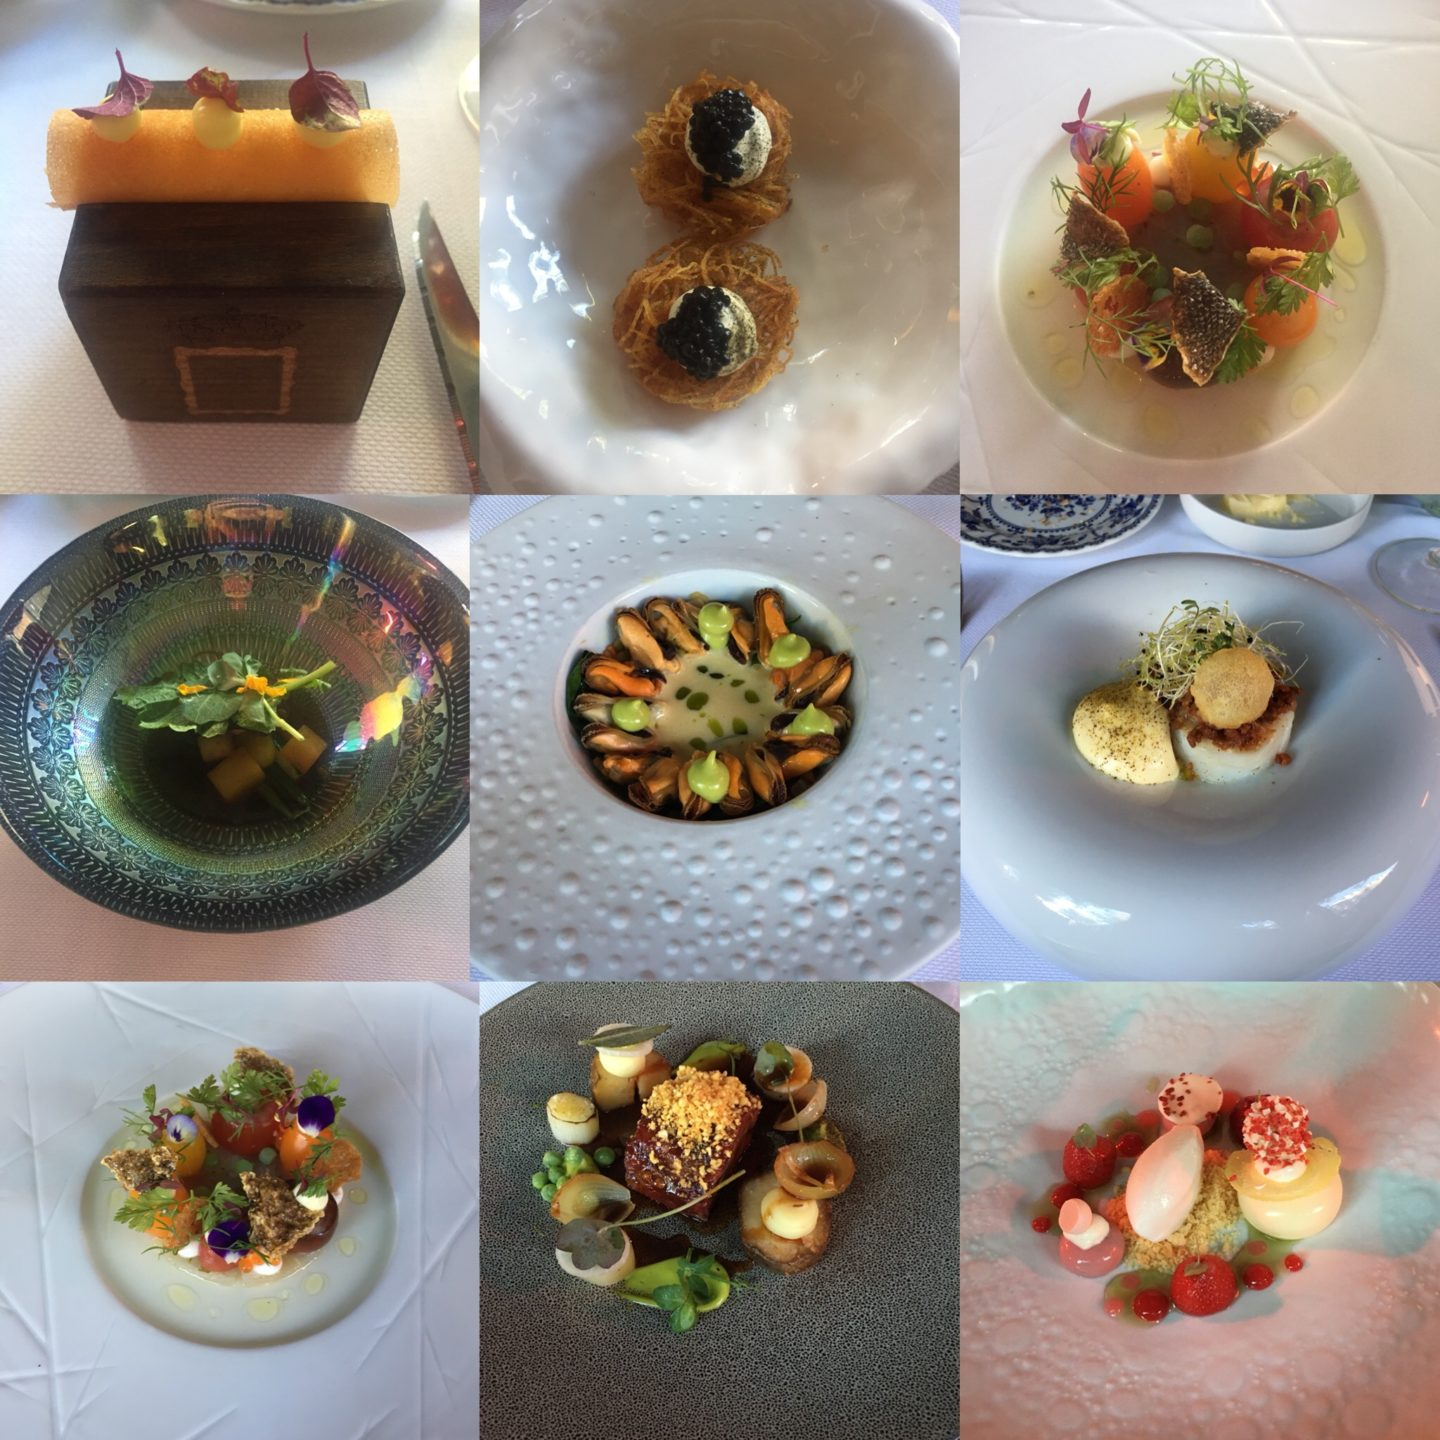 A collage image of the courses we had at De Silveren Spiegel